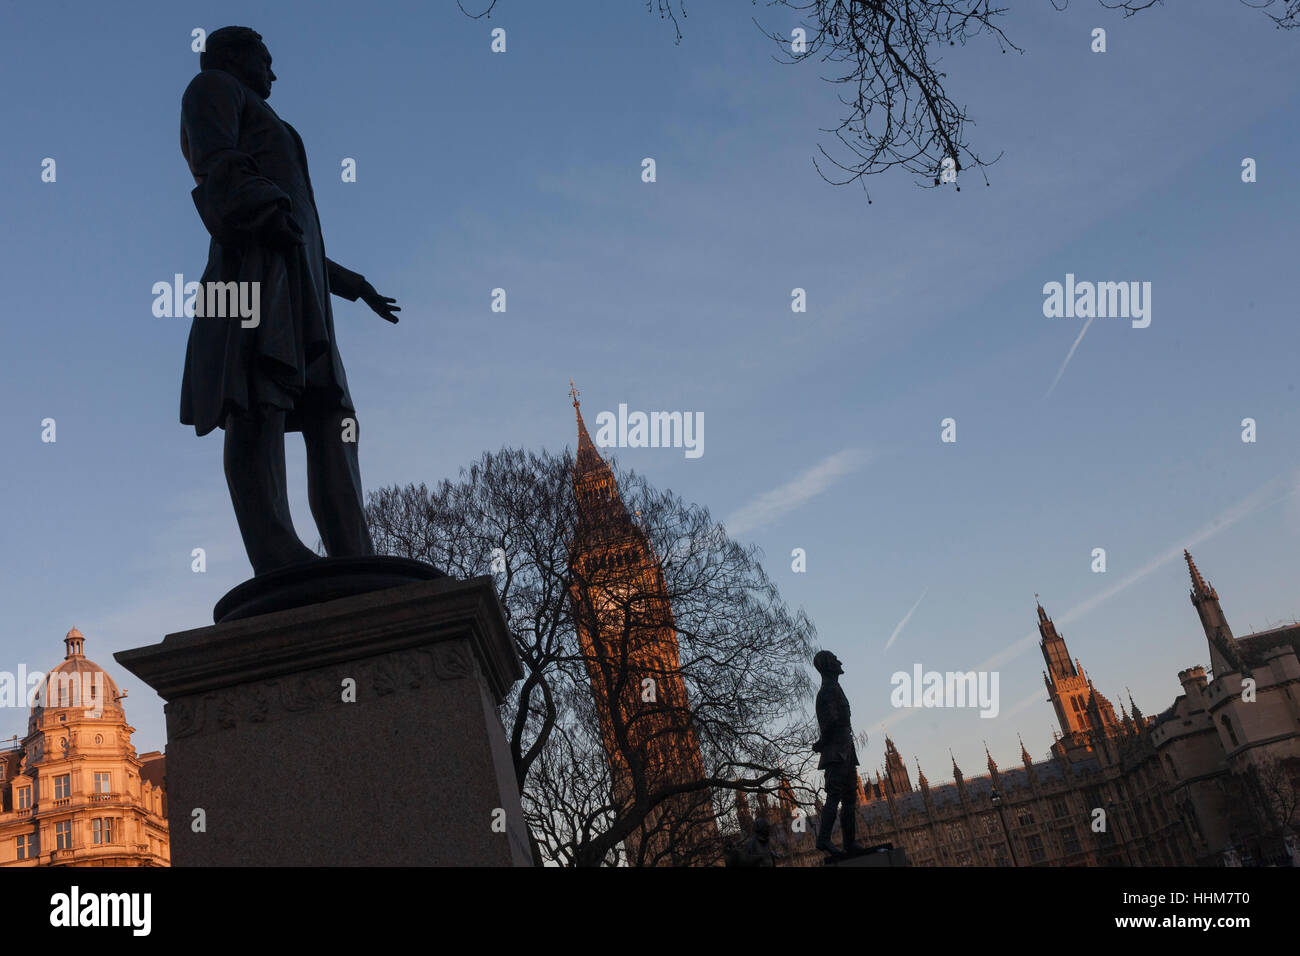 A silhouetted statues of Lord Palmerston and Jan Smuts, on 17th January 2017, in Parliament Square, Westminster, - Stock Image